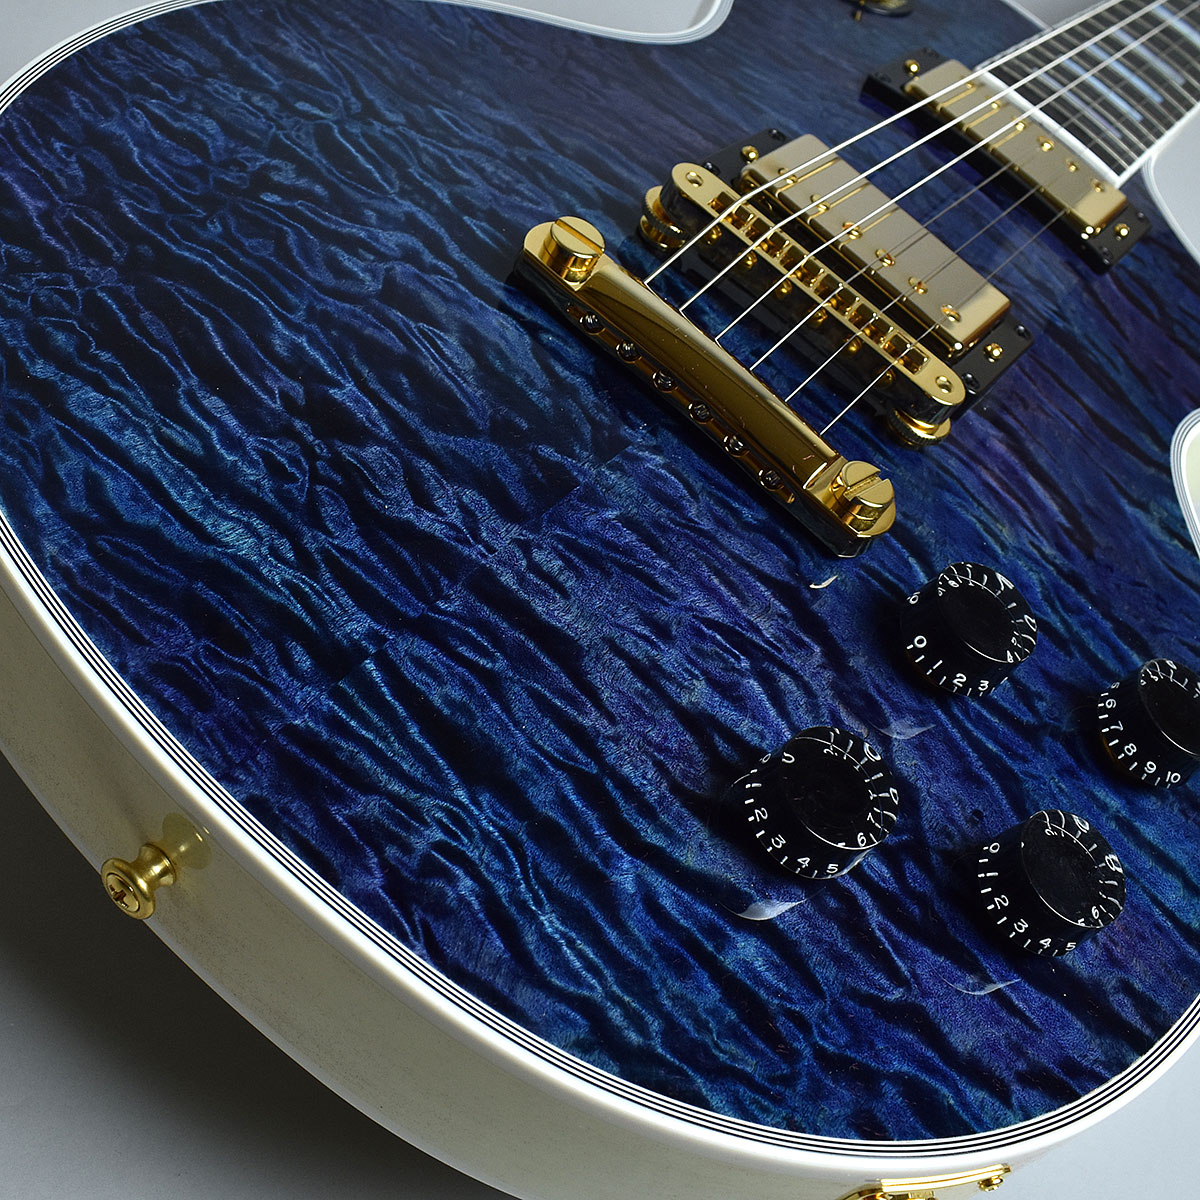 Gibson Custom Shop Hand Picked Limited Les Paul Custom 5A Quiltのボディトップ-アップ画像